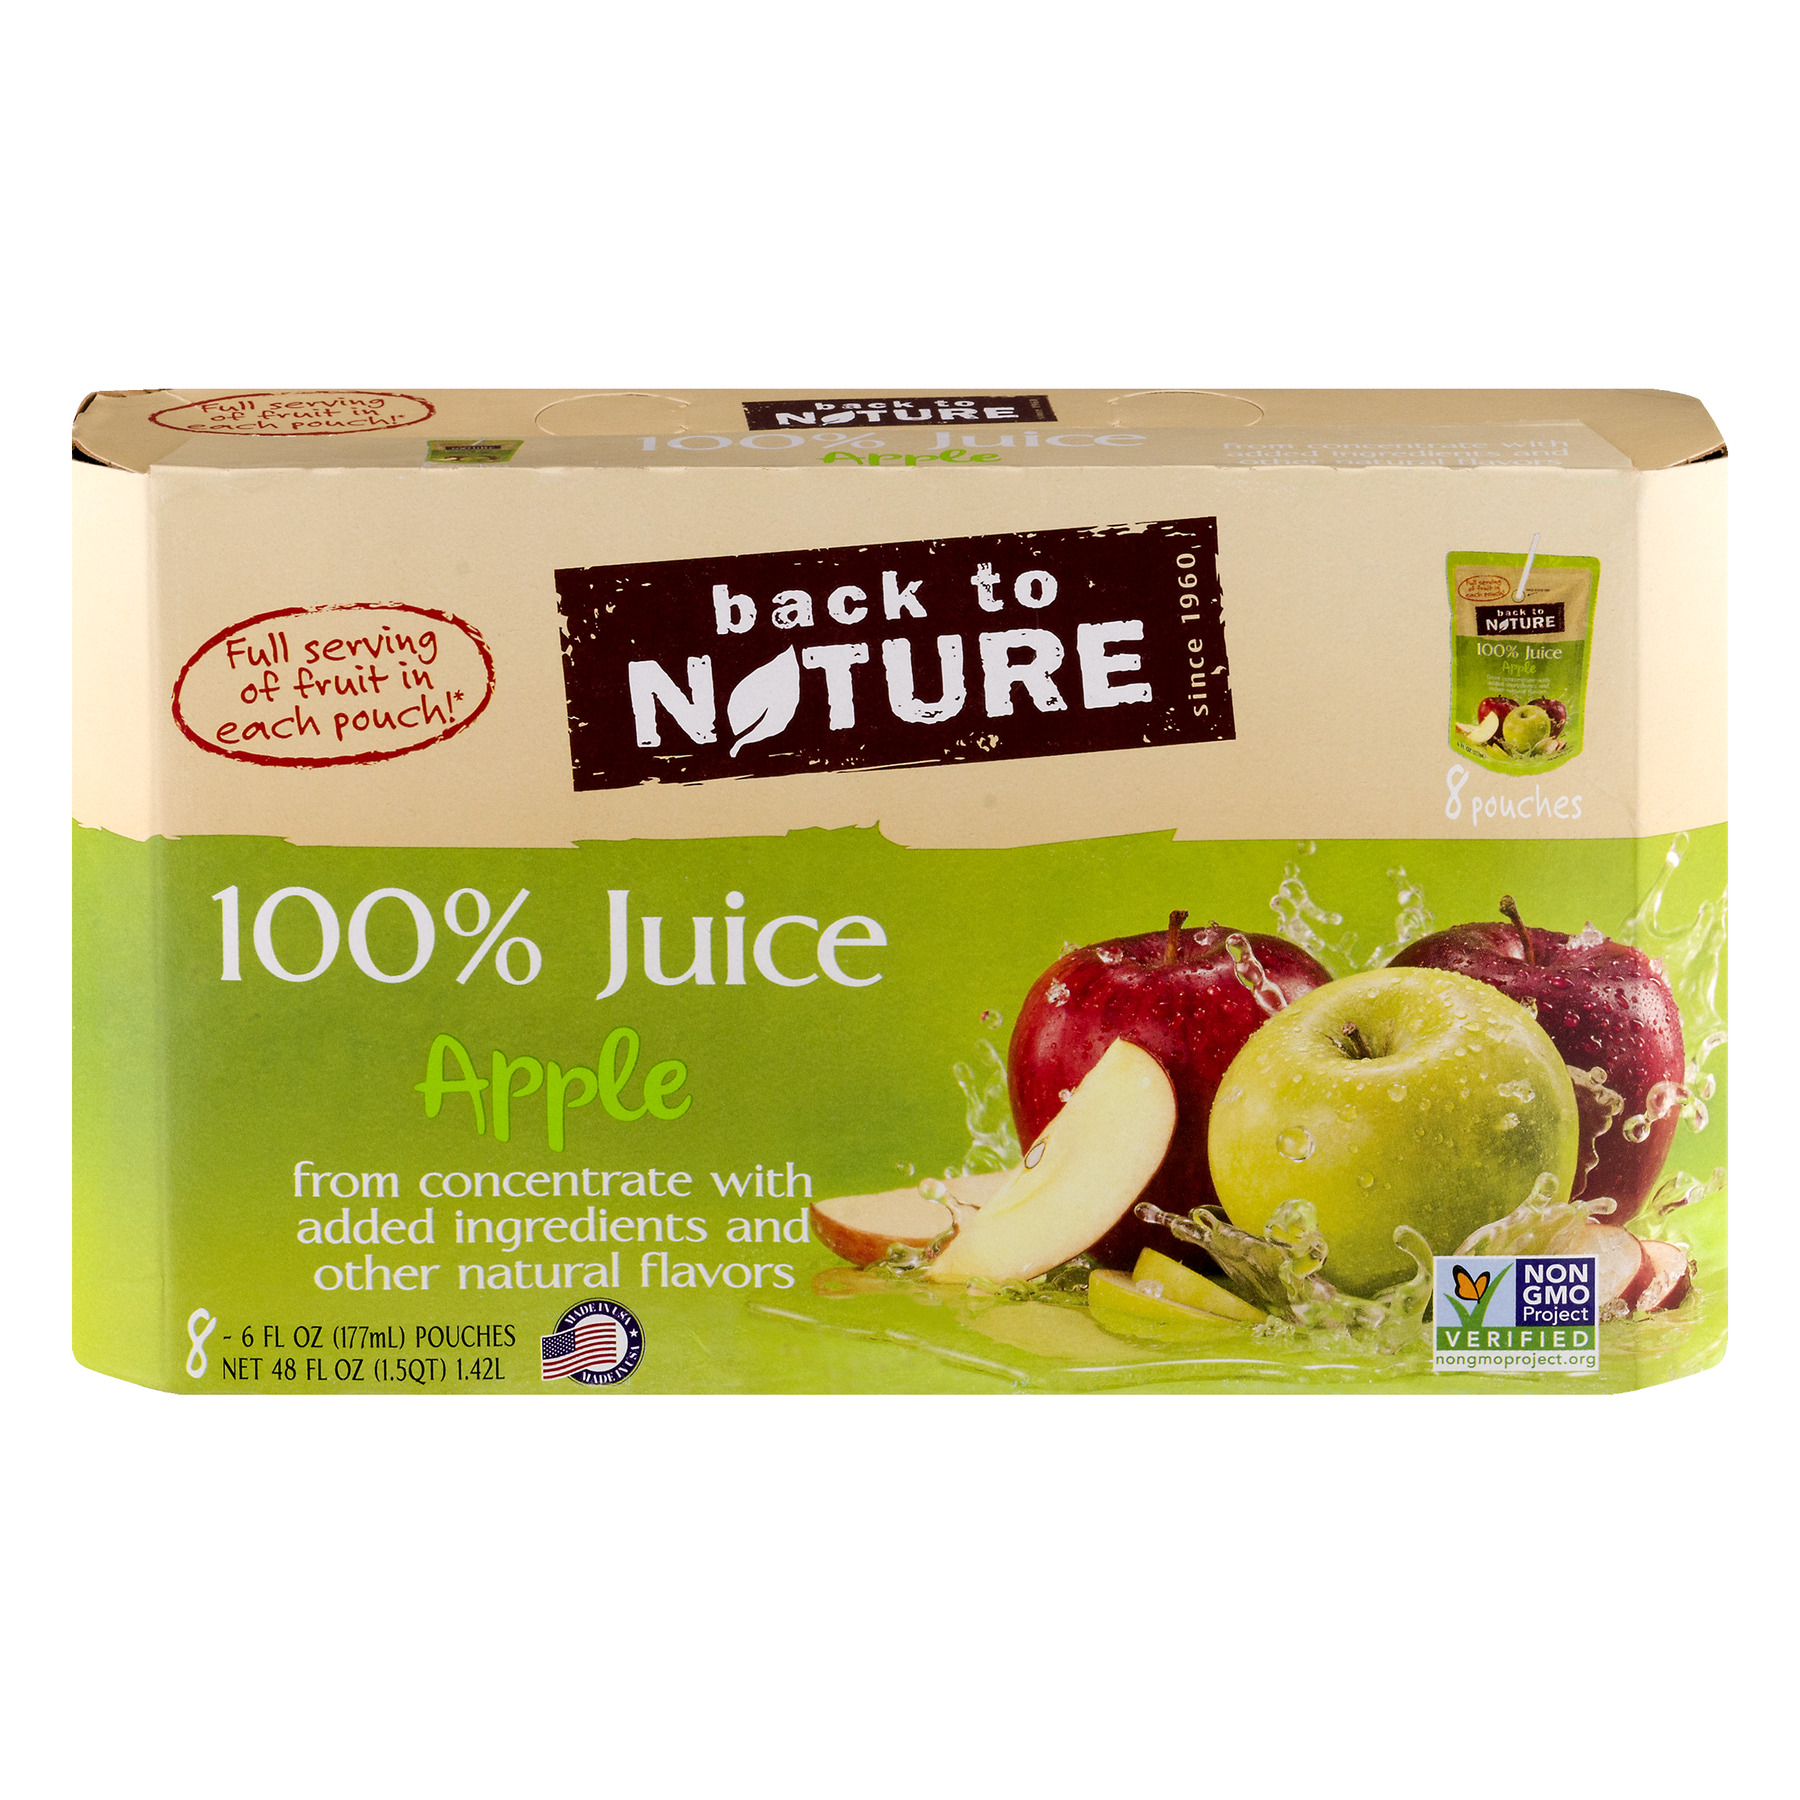 Back to Nature 100% Juice Pouches, Apple, 6 Fl Oz, 8 Count